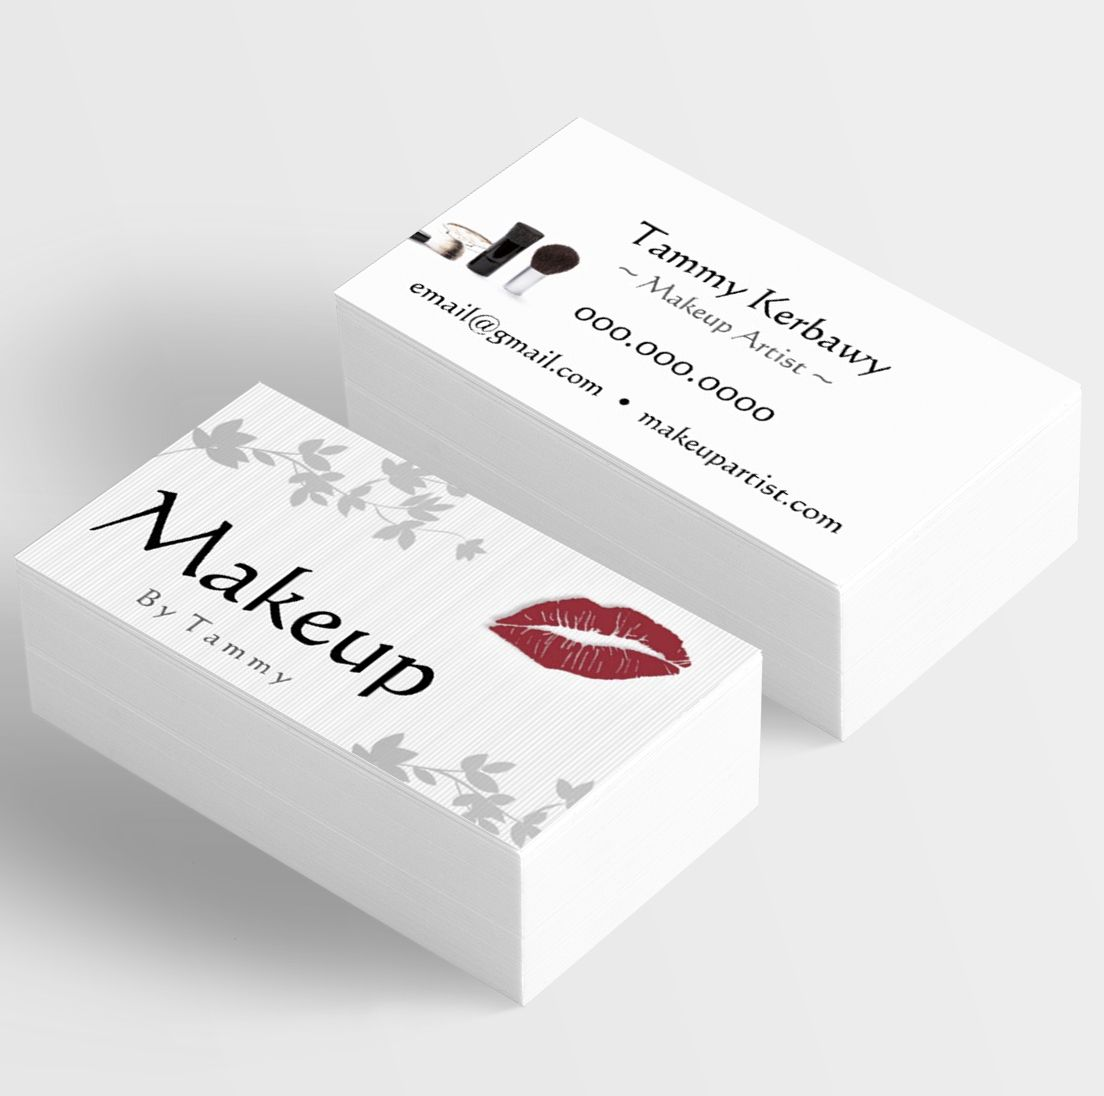 Makeup artist business card template kindly visit itwvisions makeup artist business card template kindly visit itwvisions or email tammyitwvisions mua makeupartist younique youniquepresenter makeup accmission